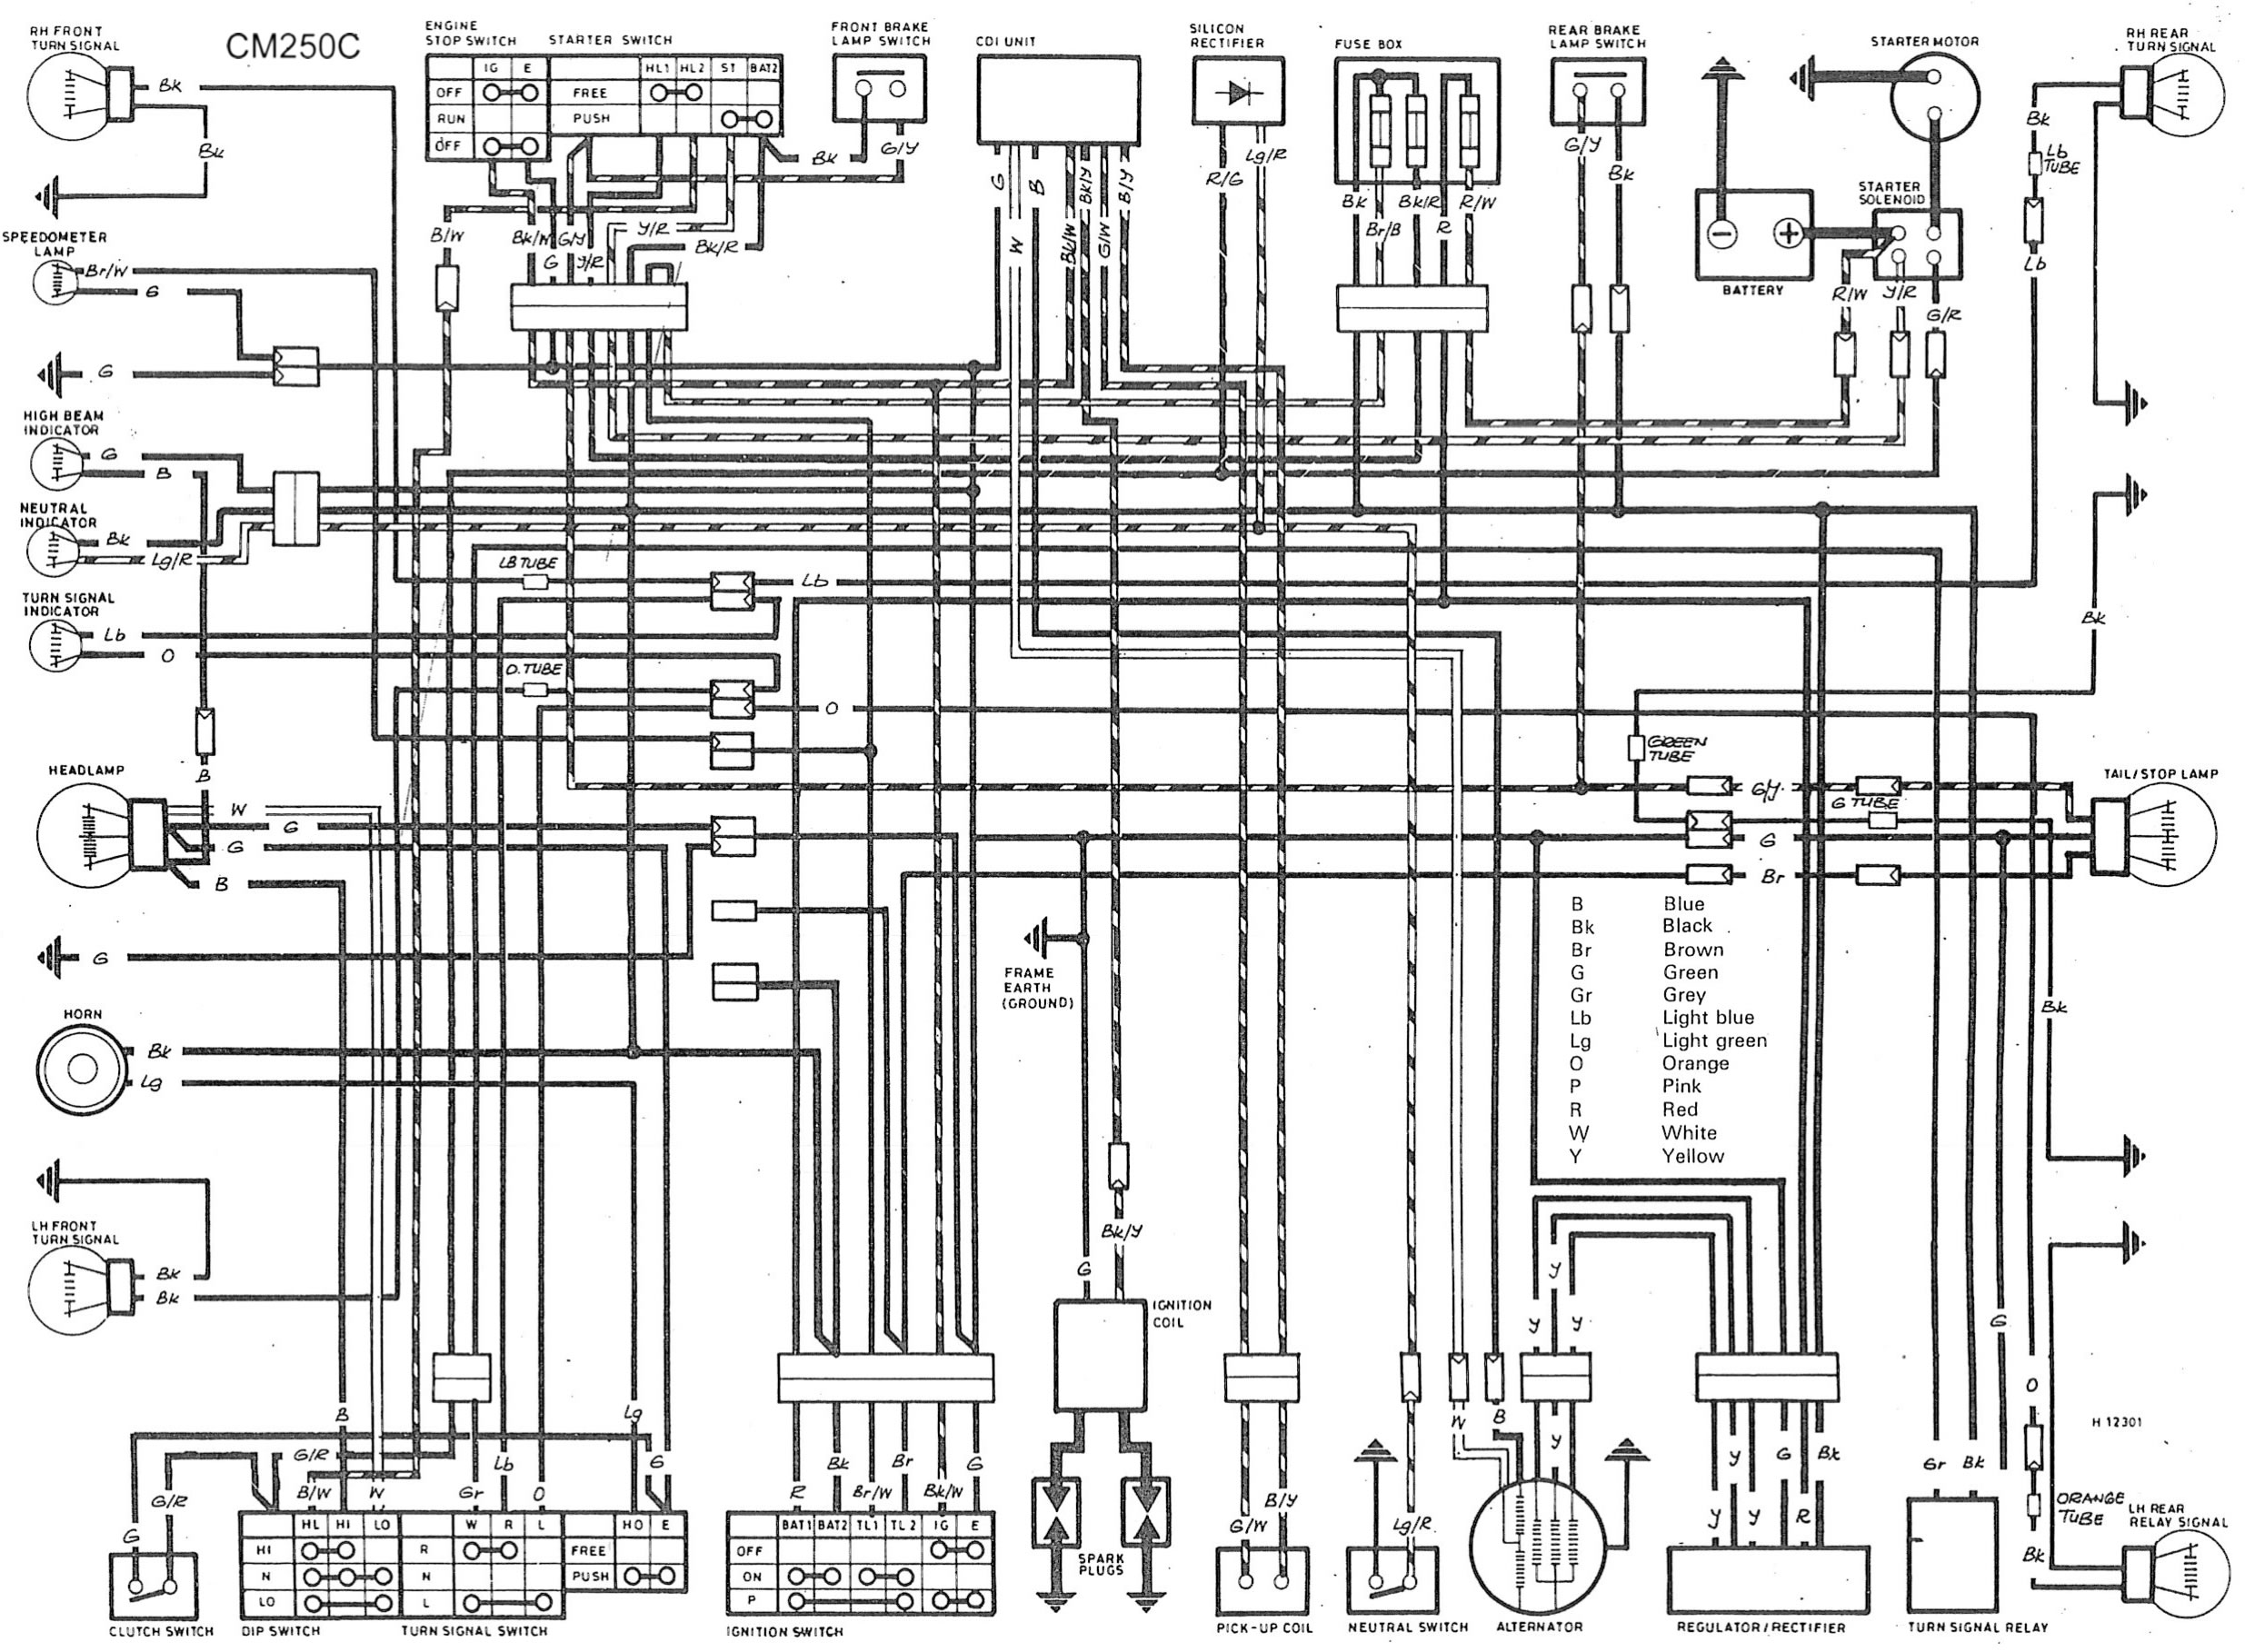 Custom Chopper Wiring Harness Schematic Great Installation Of Kit Library Rh 100 Dirtytalk Camgirls De Big Dog